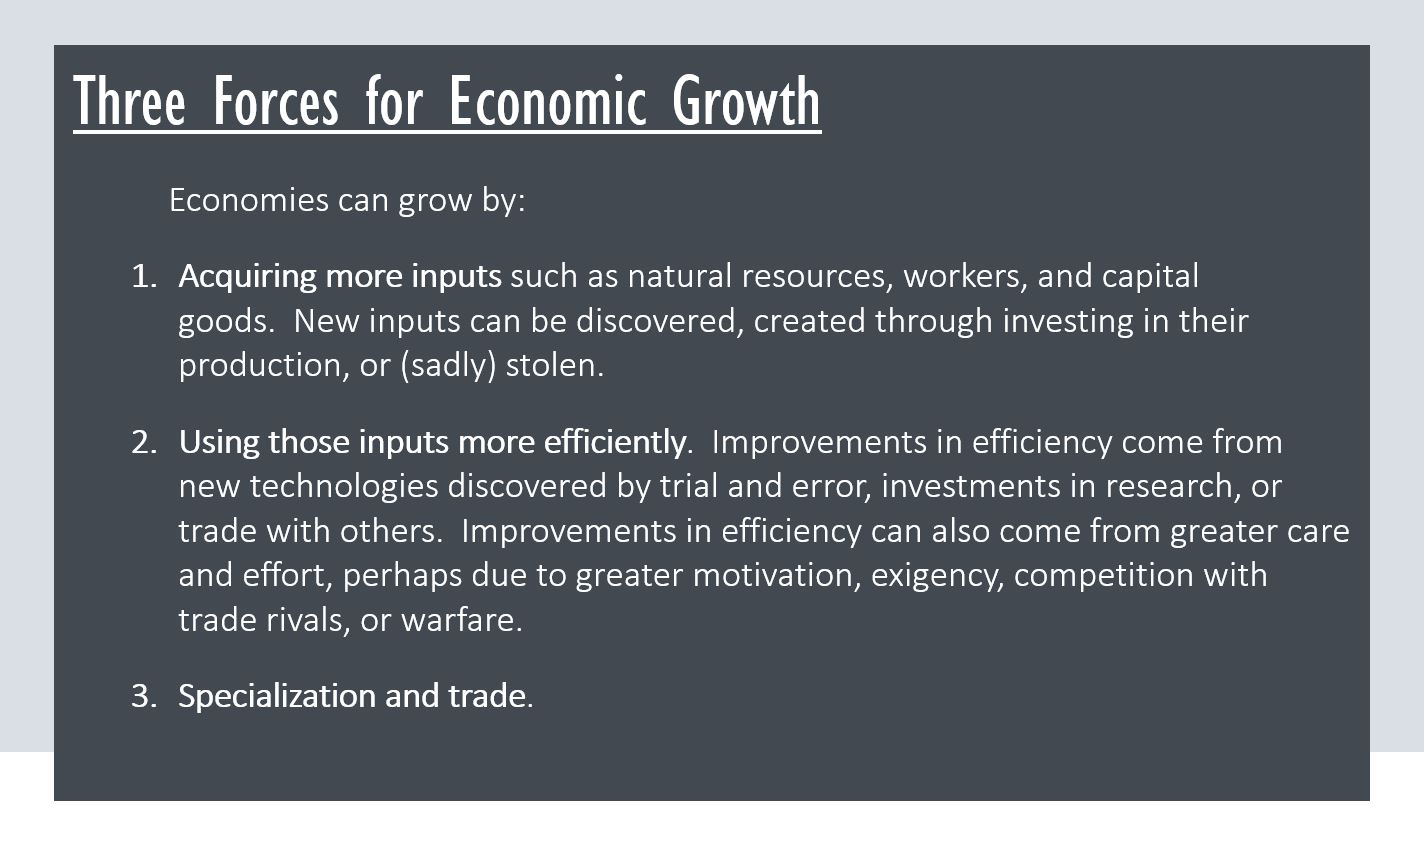 Three Forces for Economic Growth Economies can grow by: Acquiring more inputs such as natural resources, workers, and capital goods. New inputs can be discovered, created through investing in their production, or (sadly) stolen. Using those inputs more efficiently. Improvements in efficiency come from new technologies discovered by trial and error, investments in research, or trade with others. Improvements in efficiency can also come from greater care and effort, perhaps due to greater motivation, exigency, competition with trade rivals, or warfare. Specialization and trade.